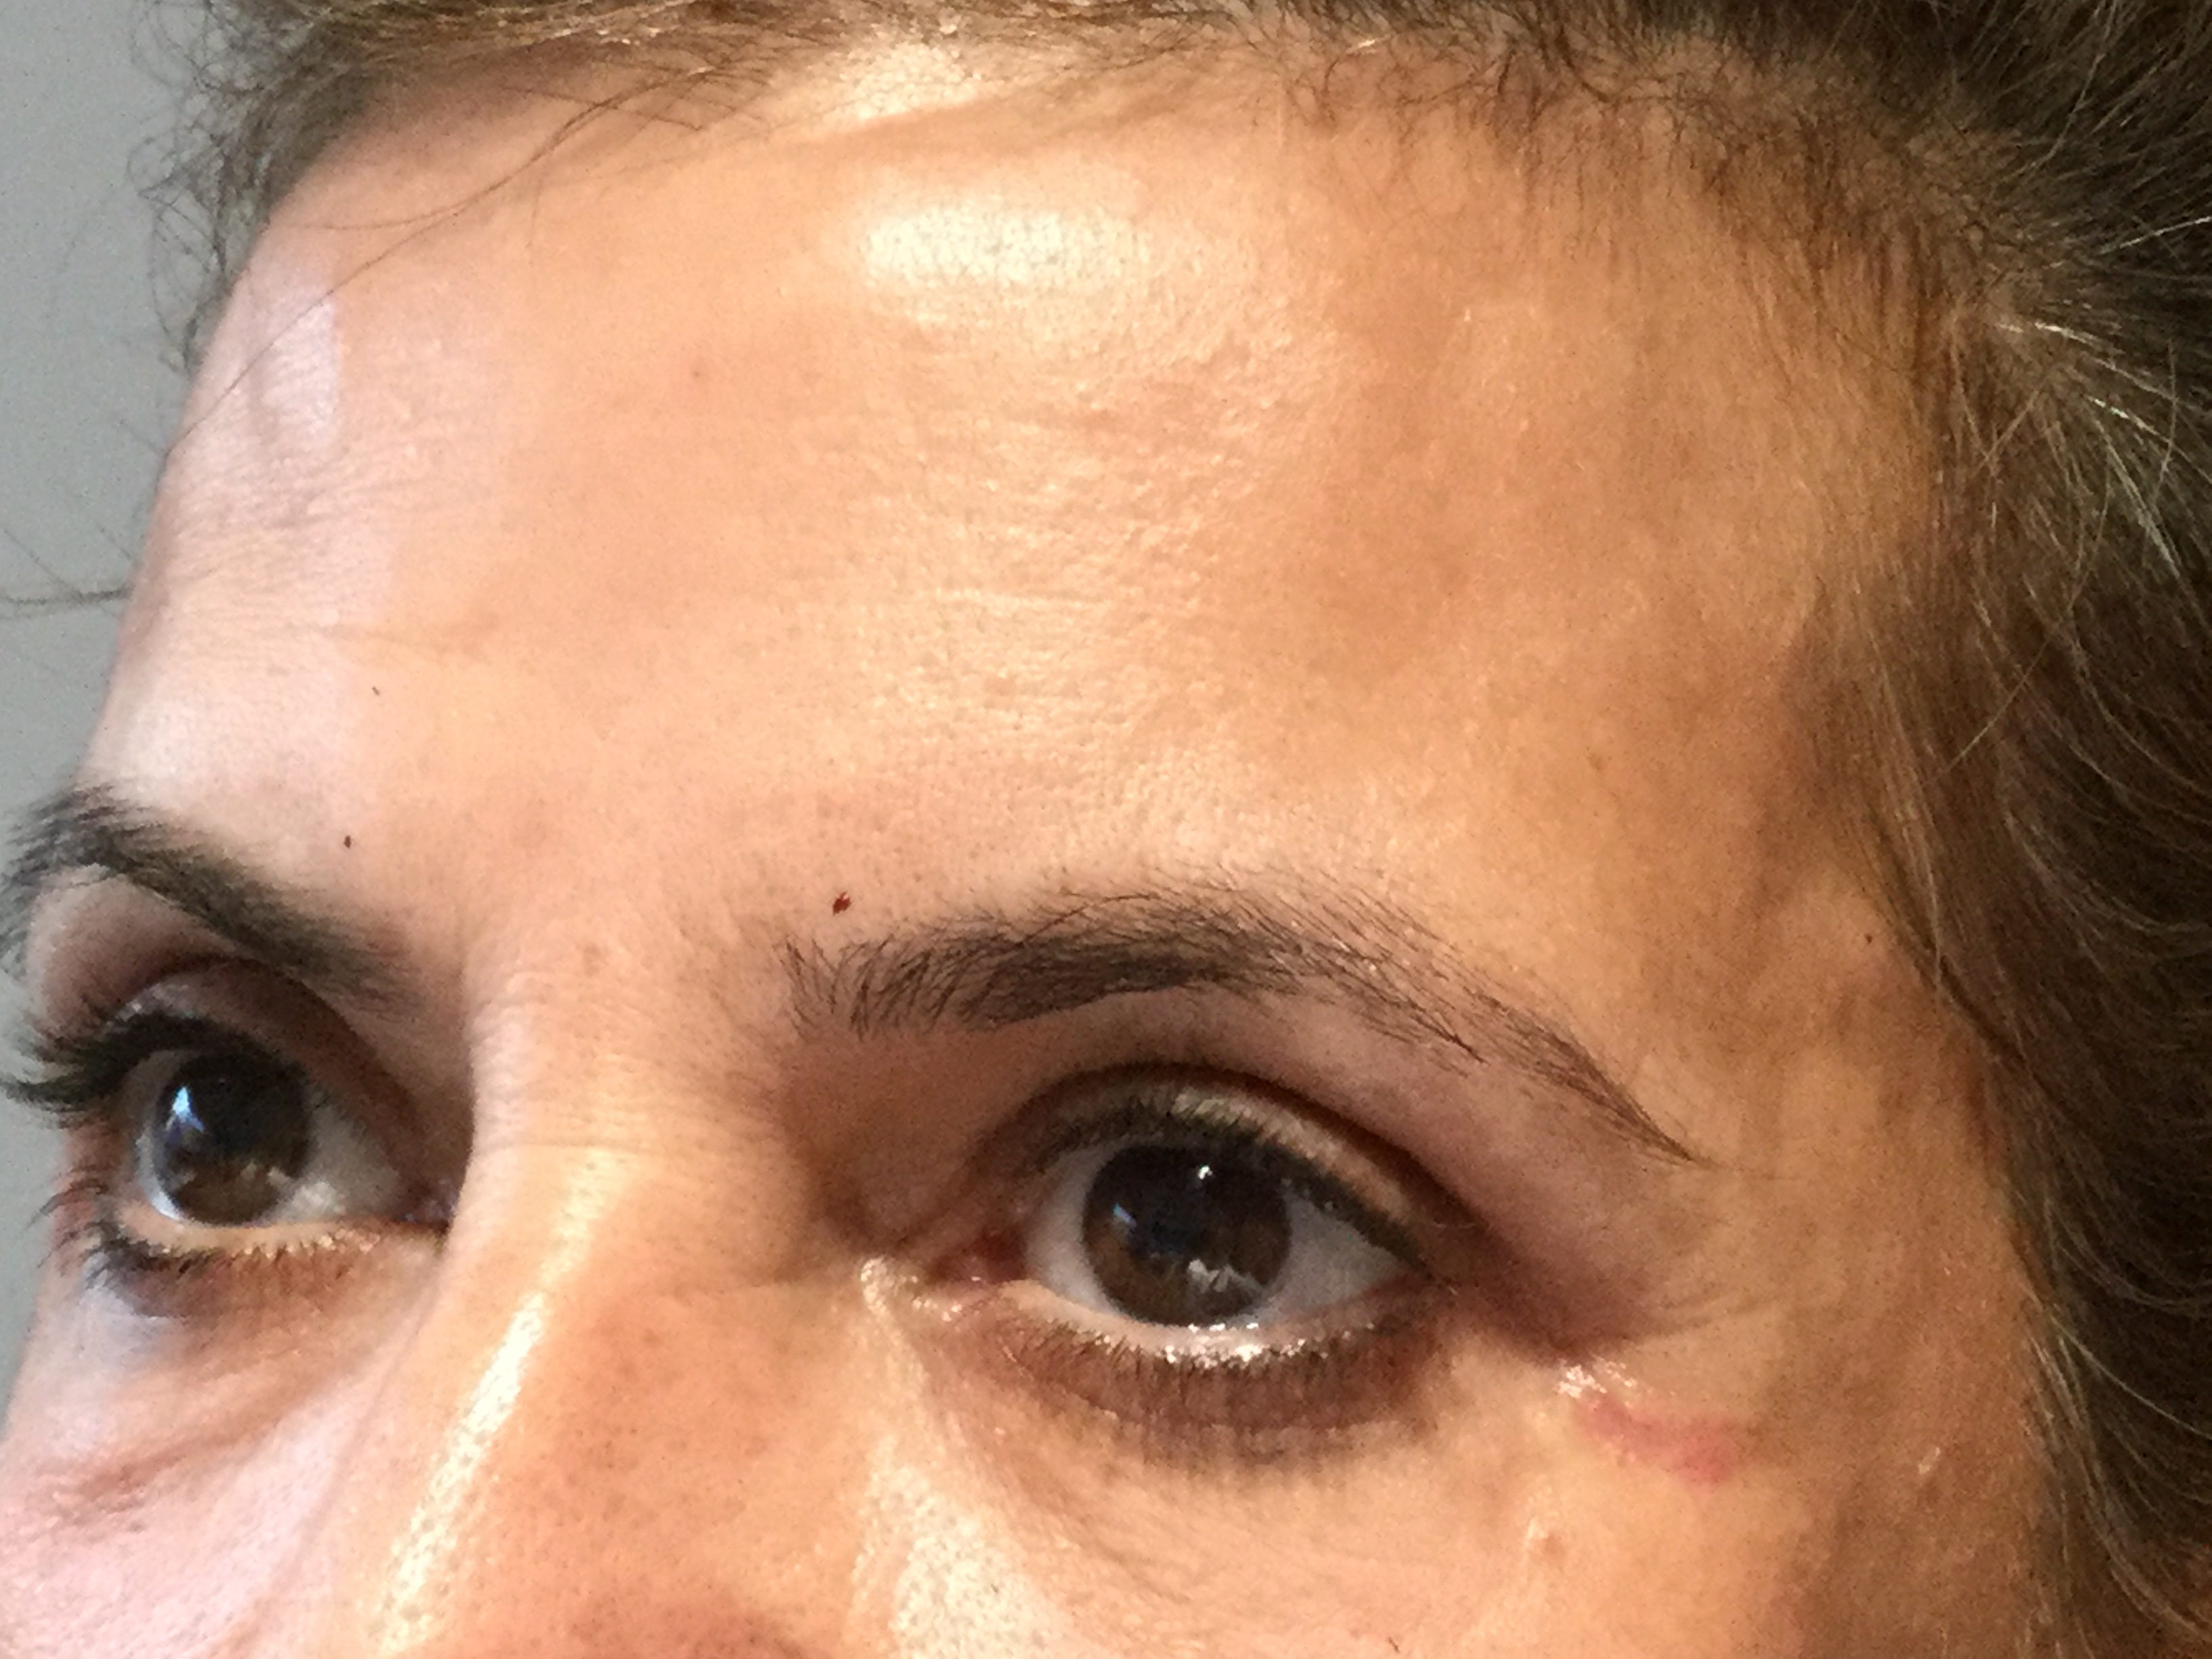 Eyelid and brow bone after